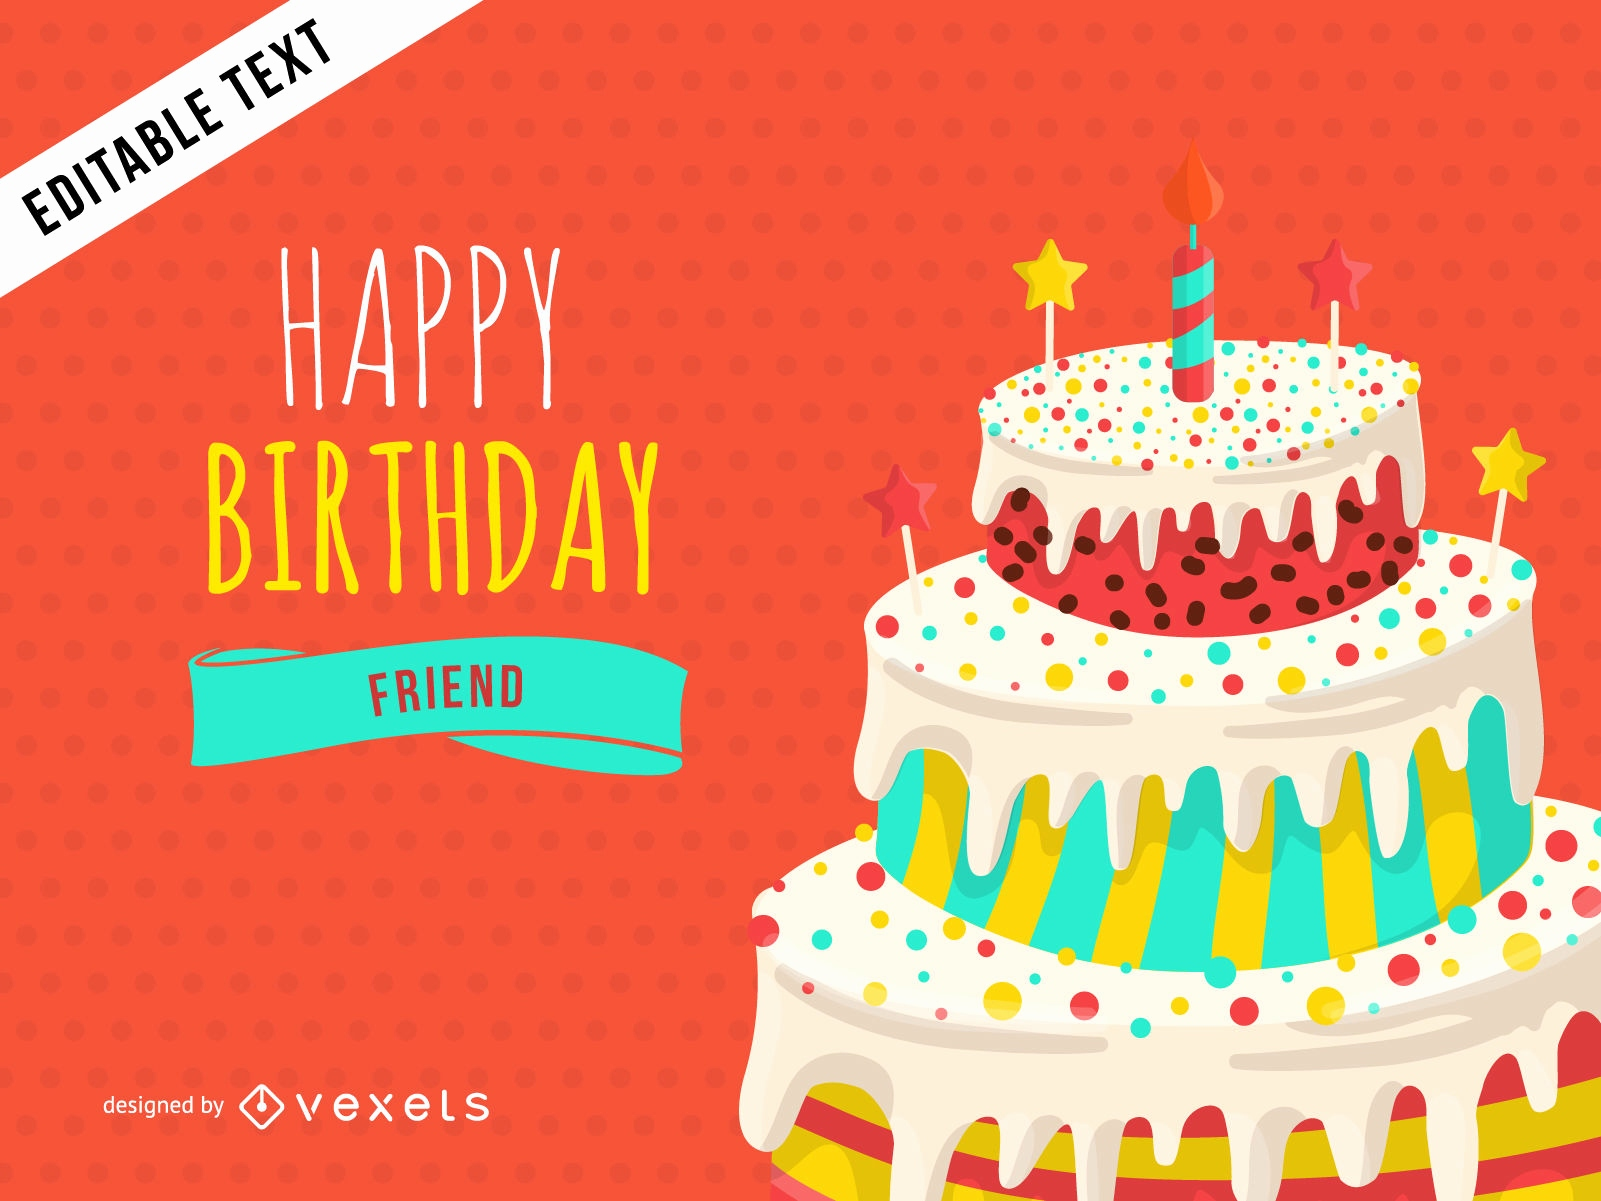 birthday greeting maker online ; birthday-cards-with-name-and-photo-editor-online-inspirational-happy-birthday-greeting-card-design-vector-of-birthday-cards-with-name-and-photo-editor-online